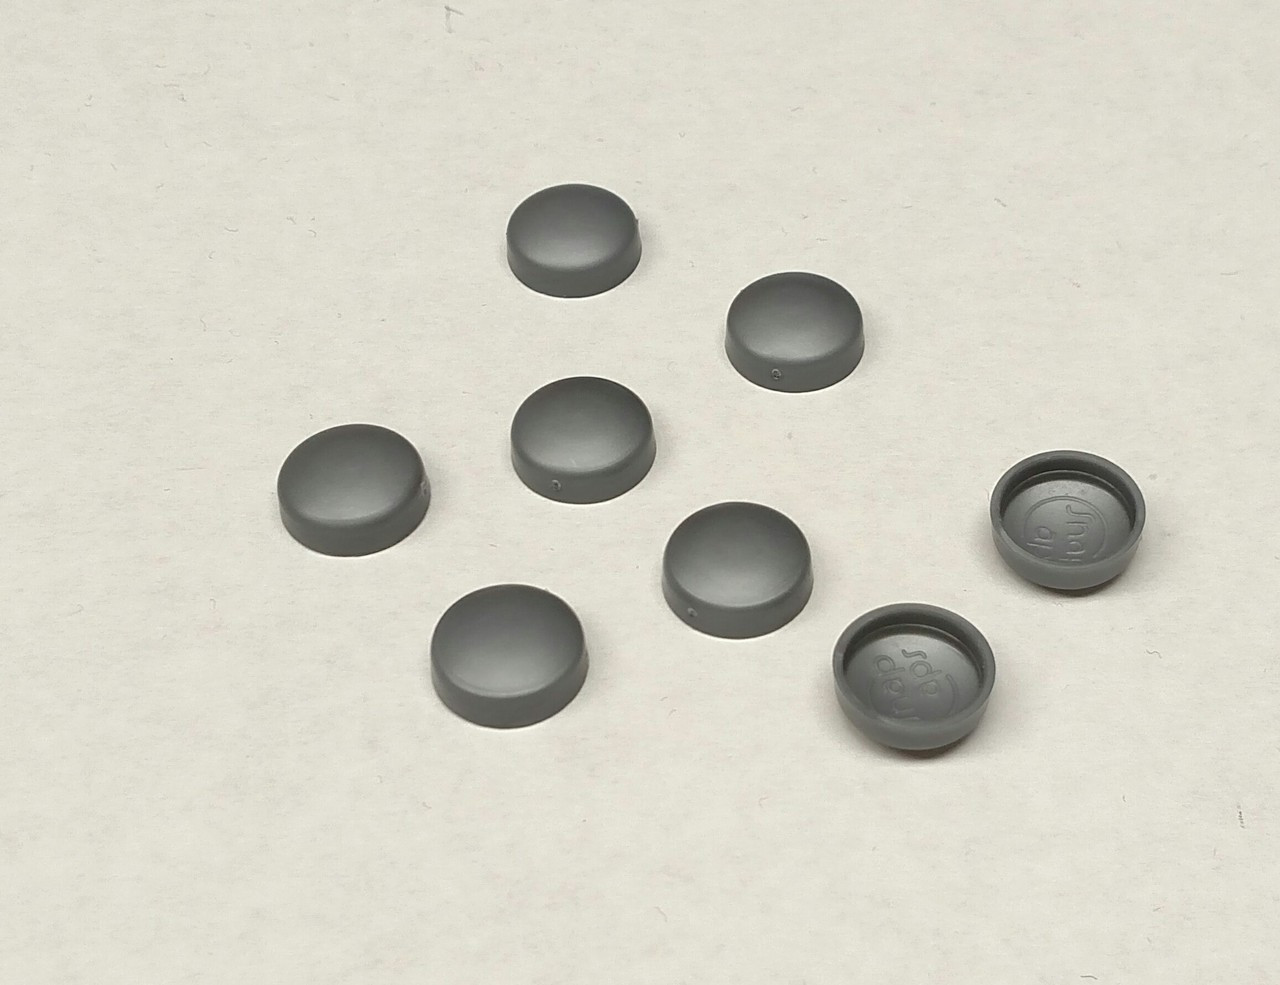 #12 Snap-Cap Silver Gray & Flat Base/Washer 25 Pack